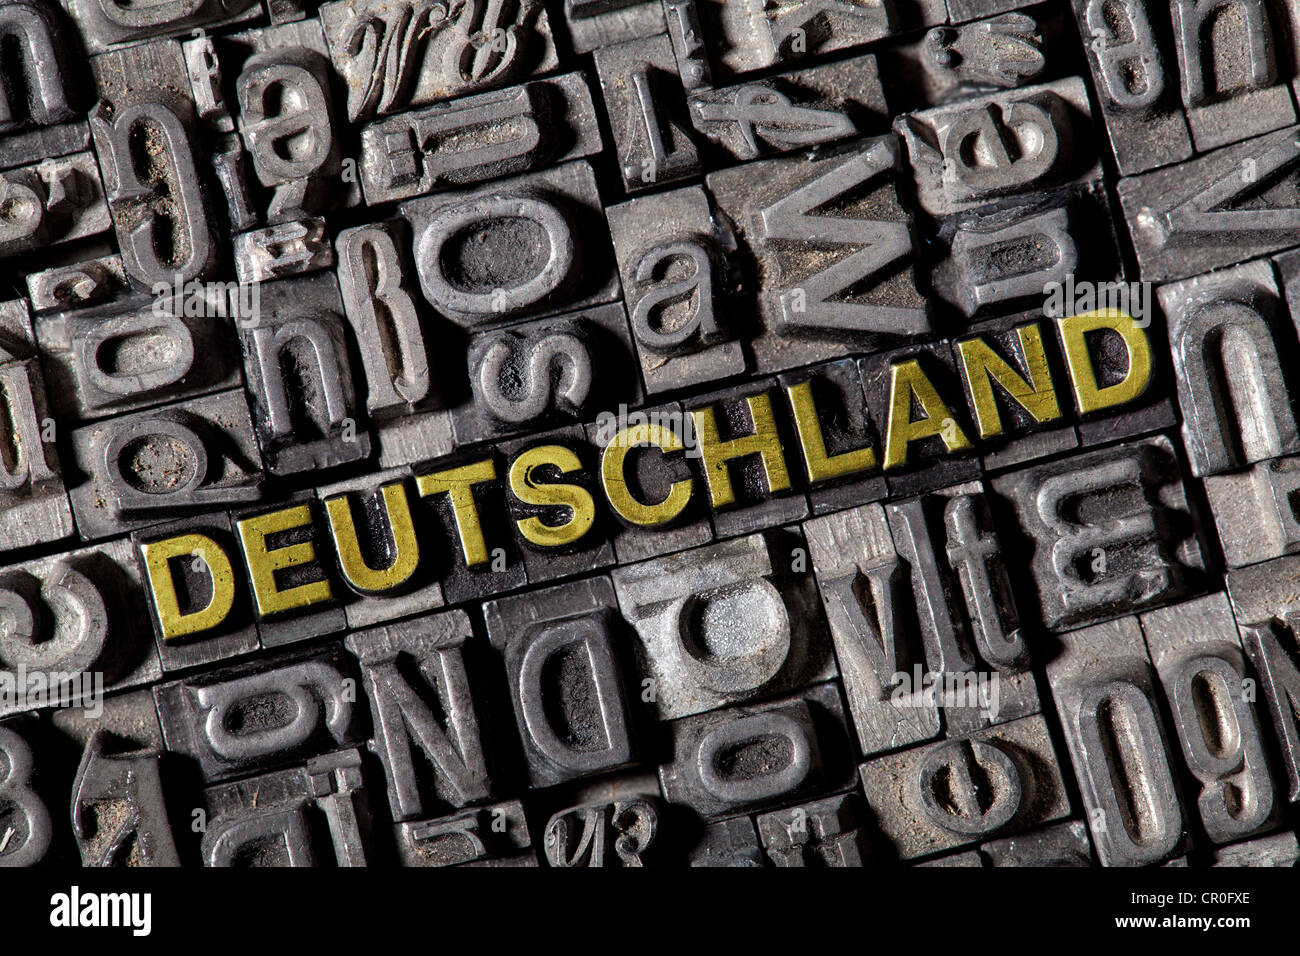 The word 'Deutschland', German for 'Germany', made of old lead type - Stock Image